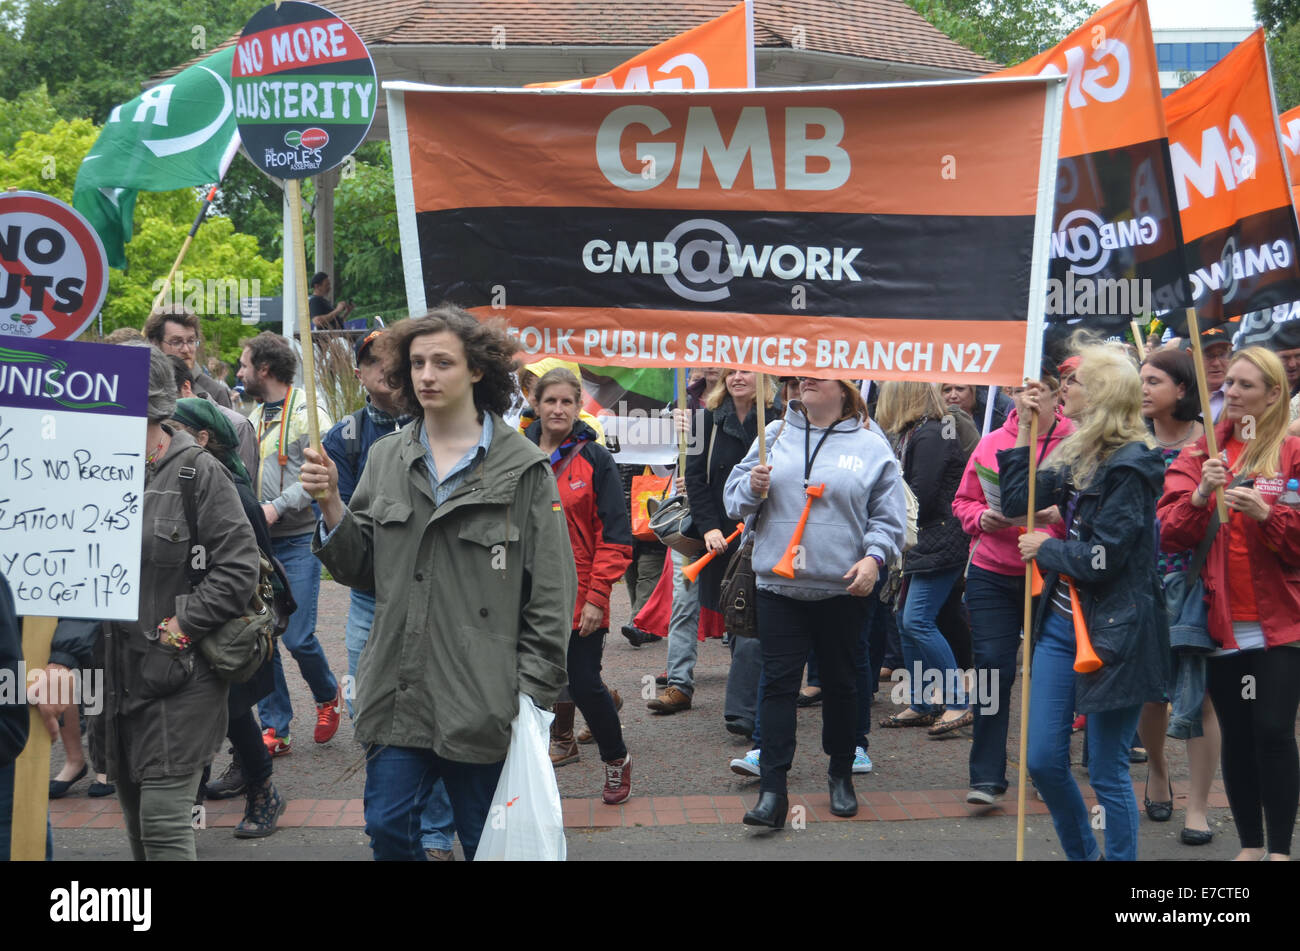 Protest against public sector cuts, Norwich July 2014 UK - Stock Image